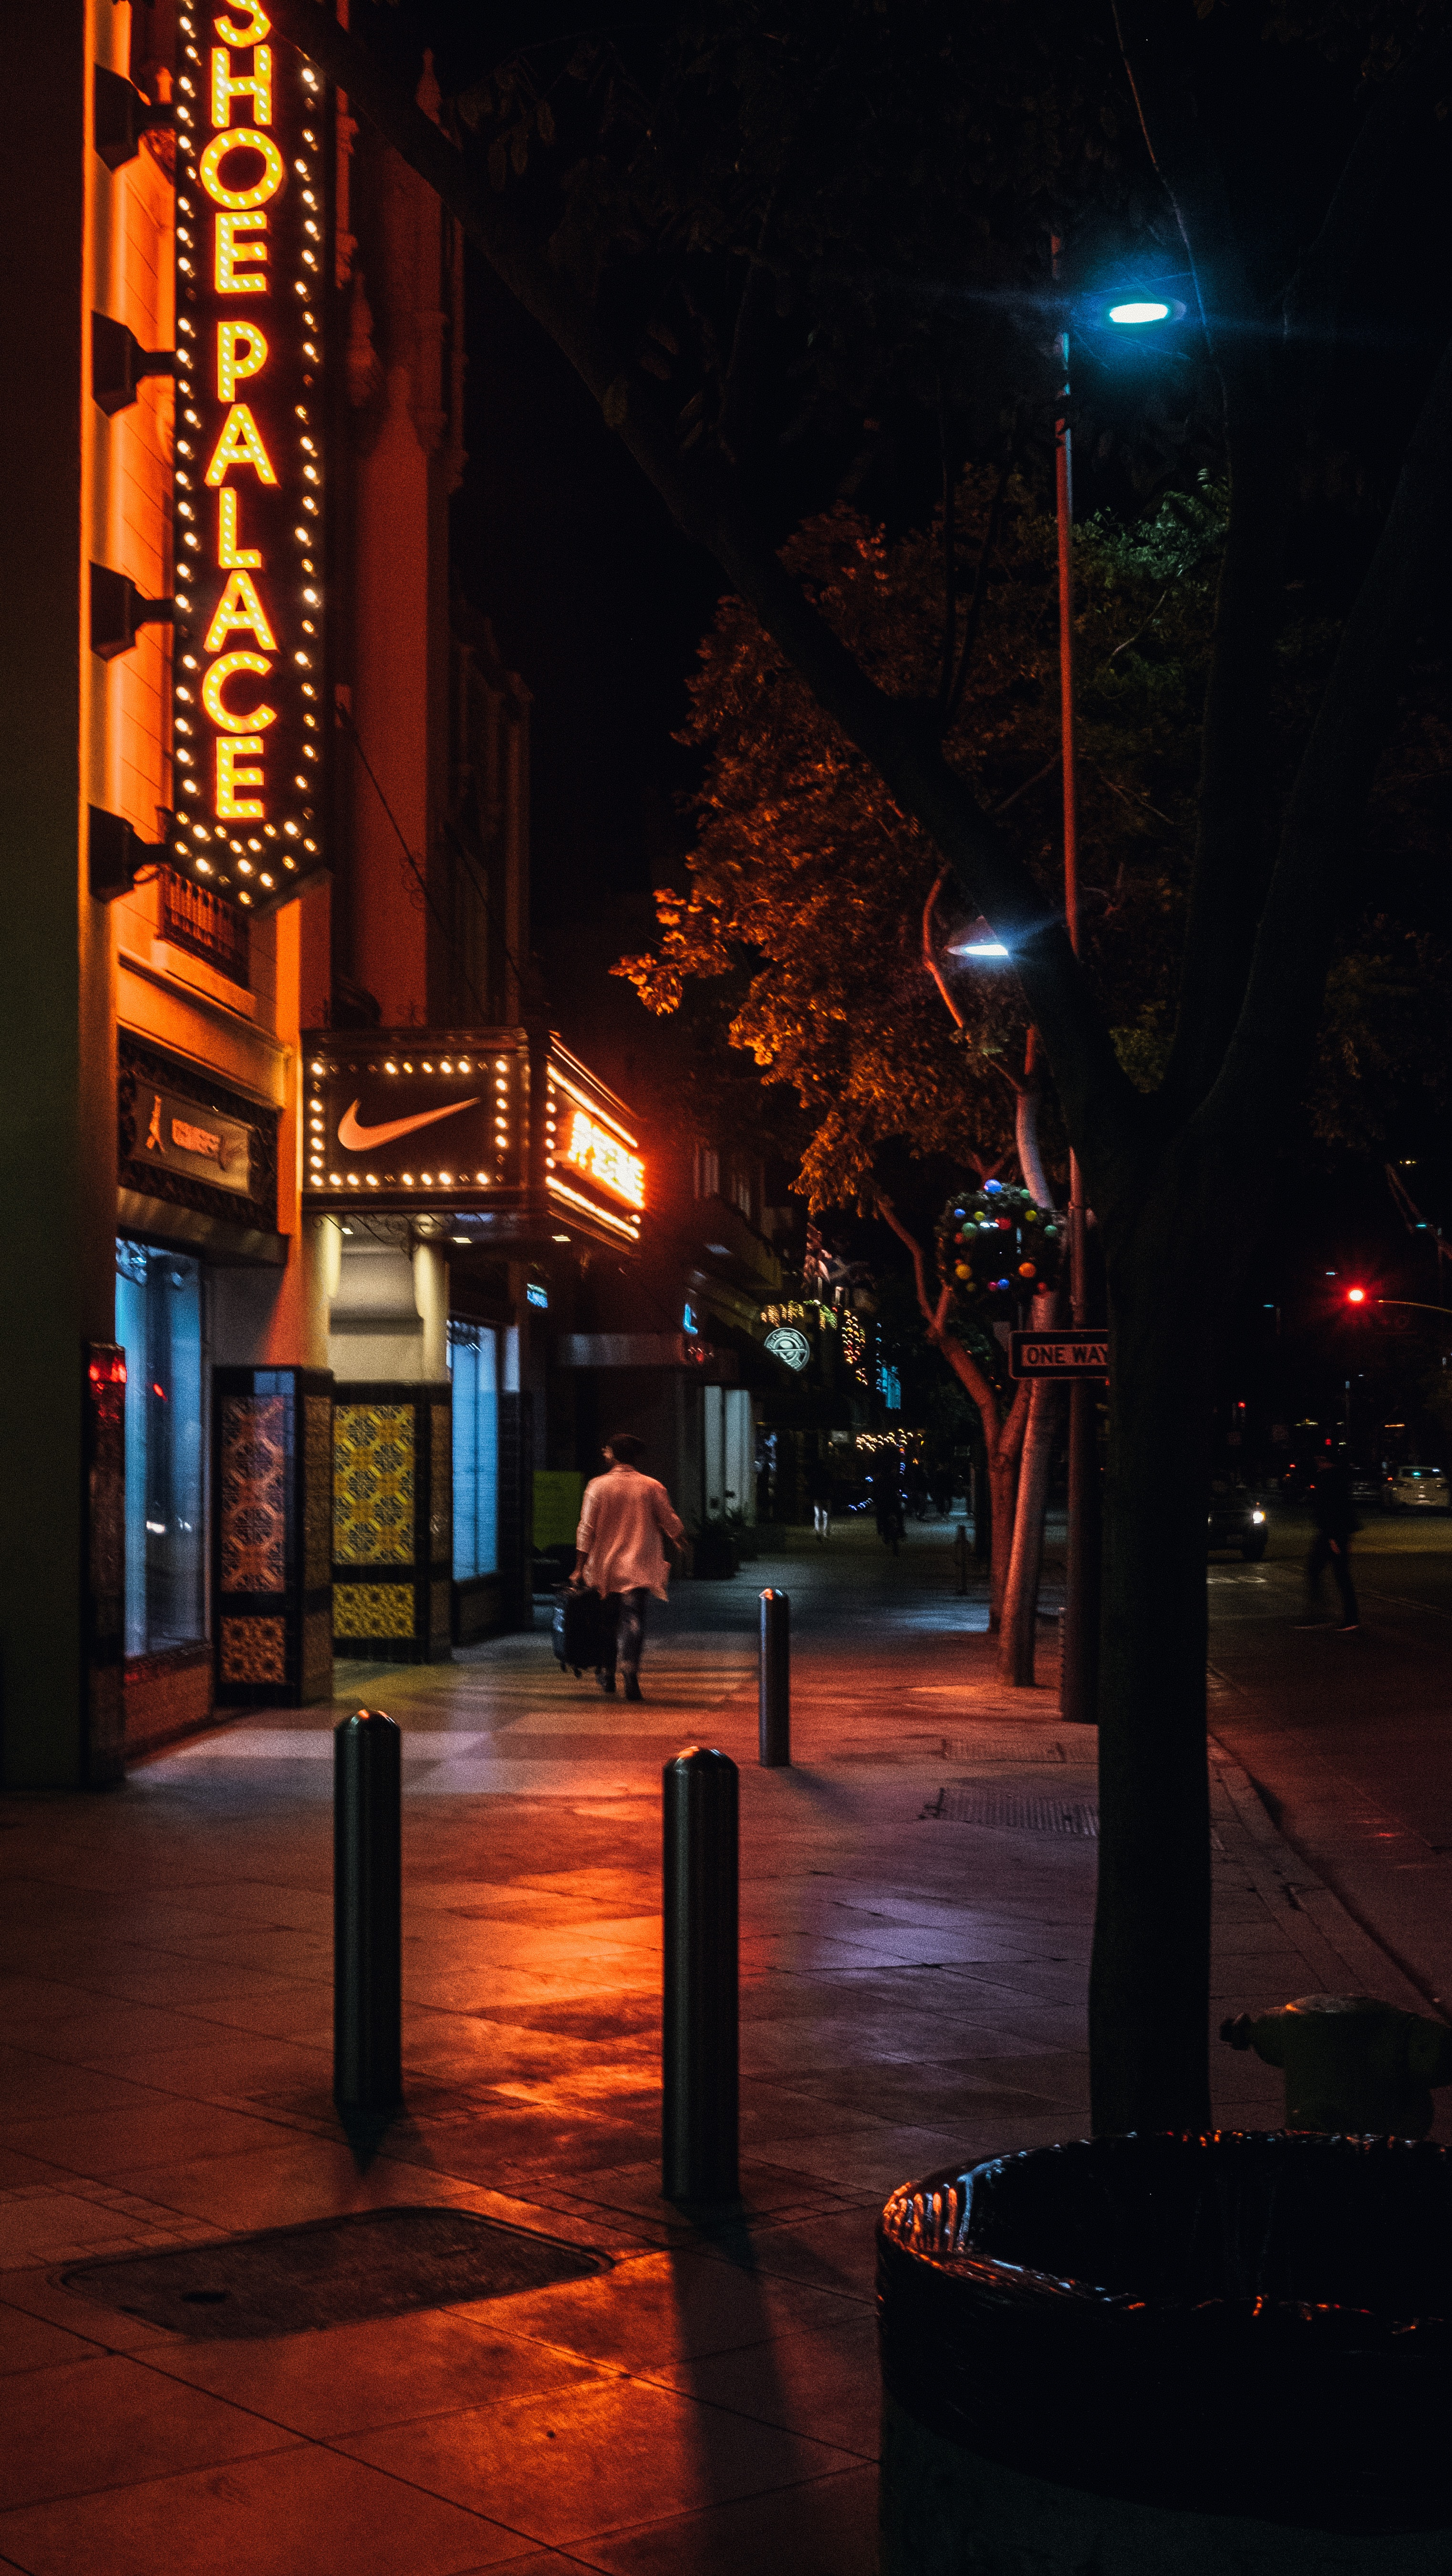 photo of person walking beside a storefront during night time